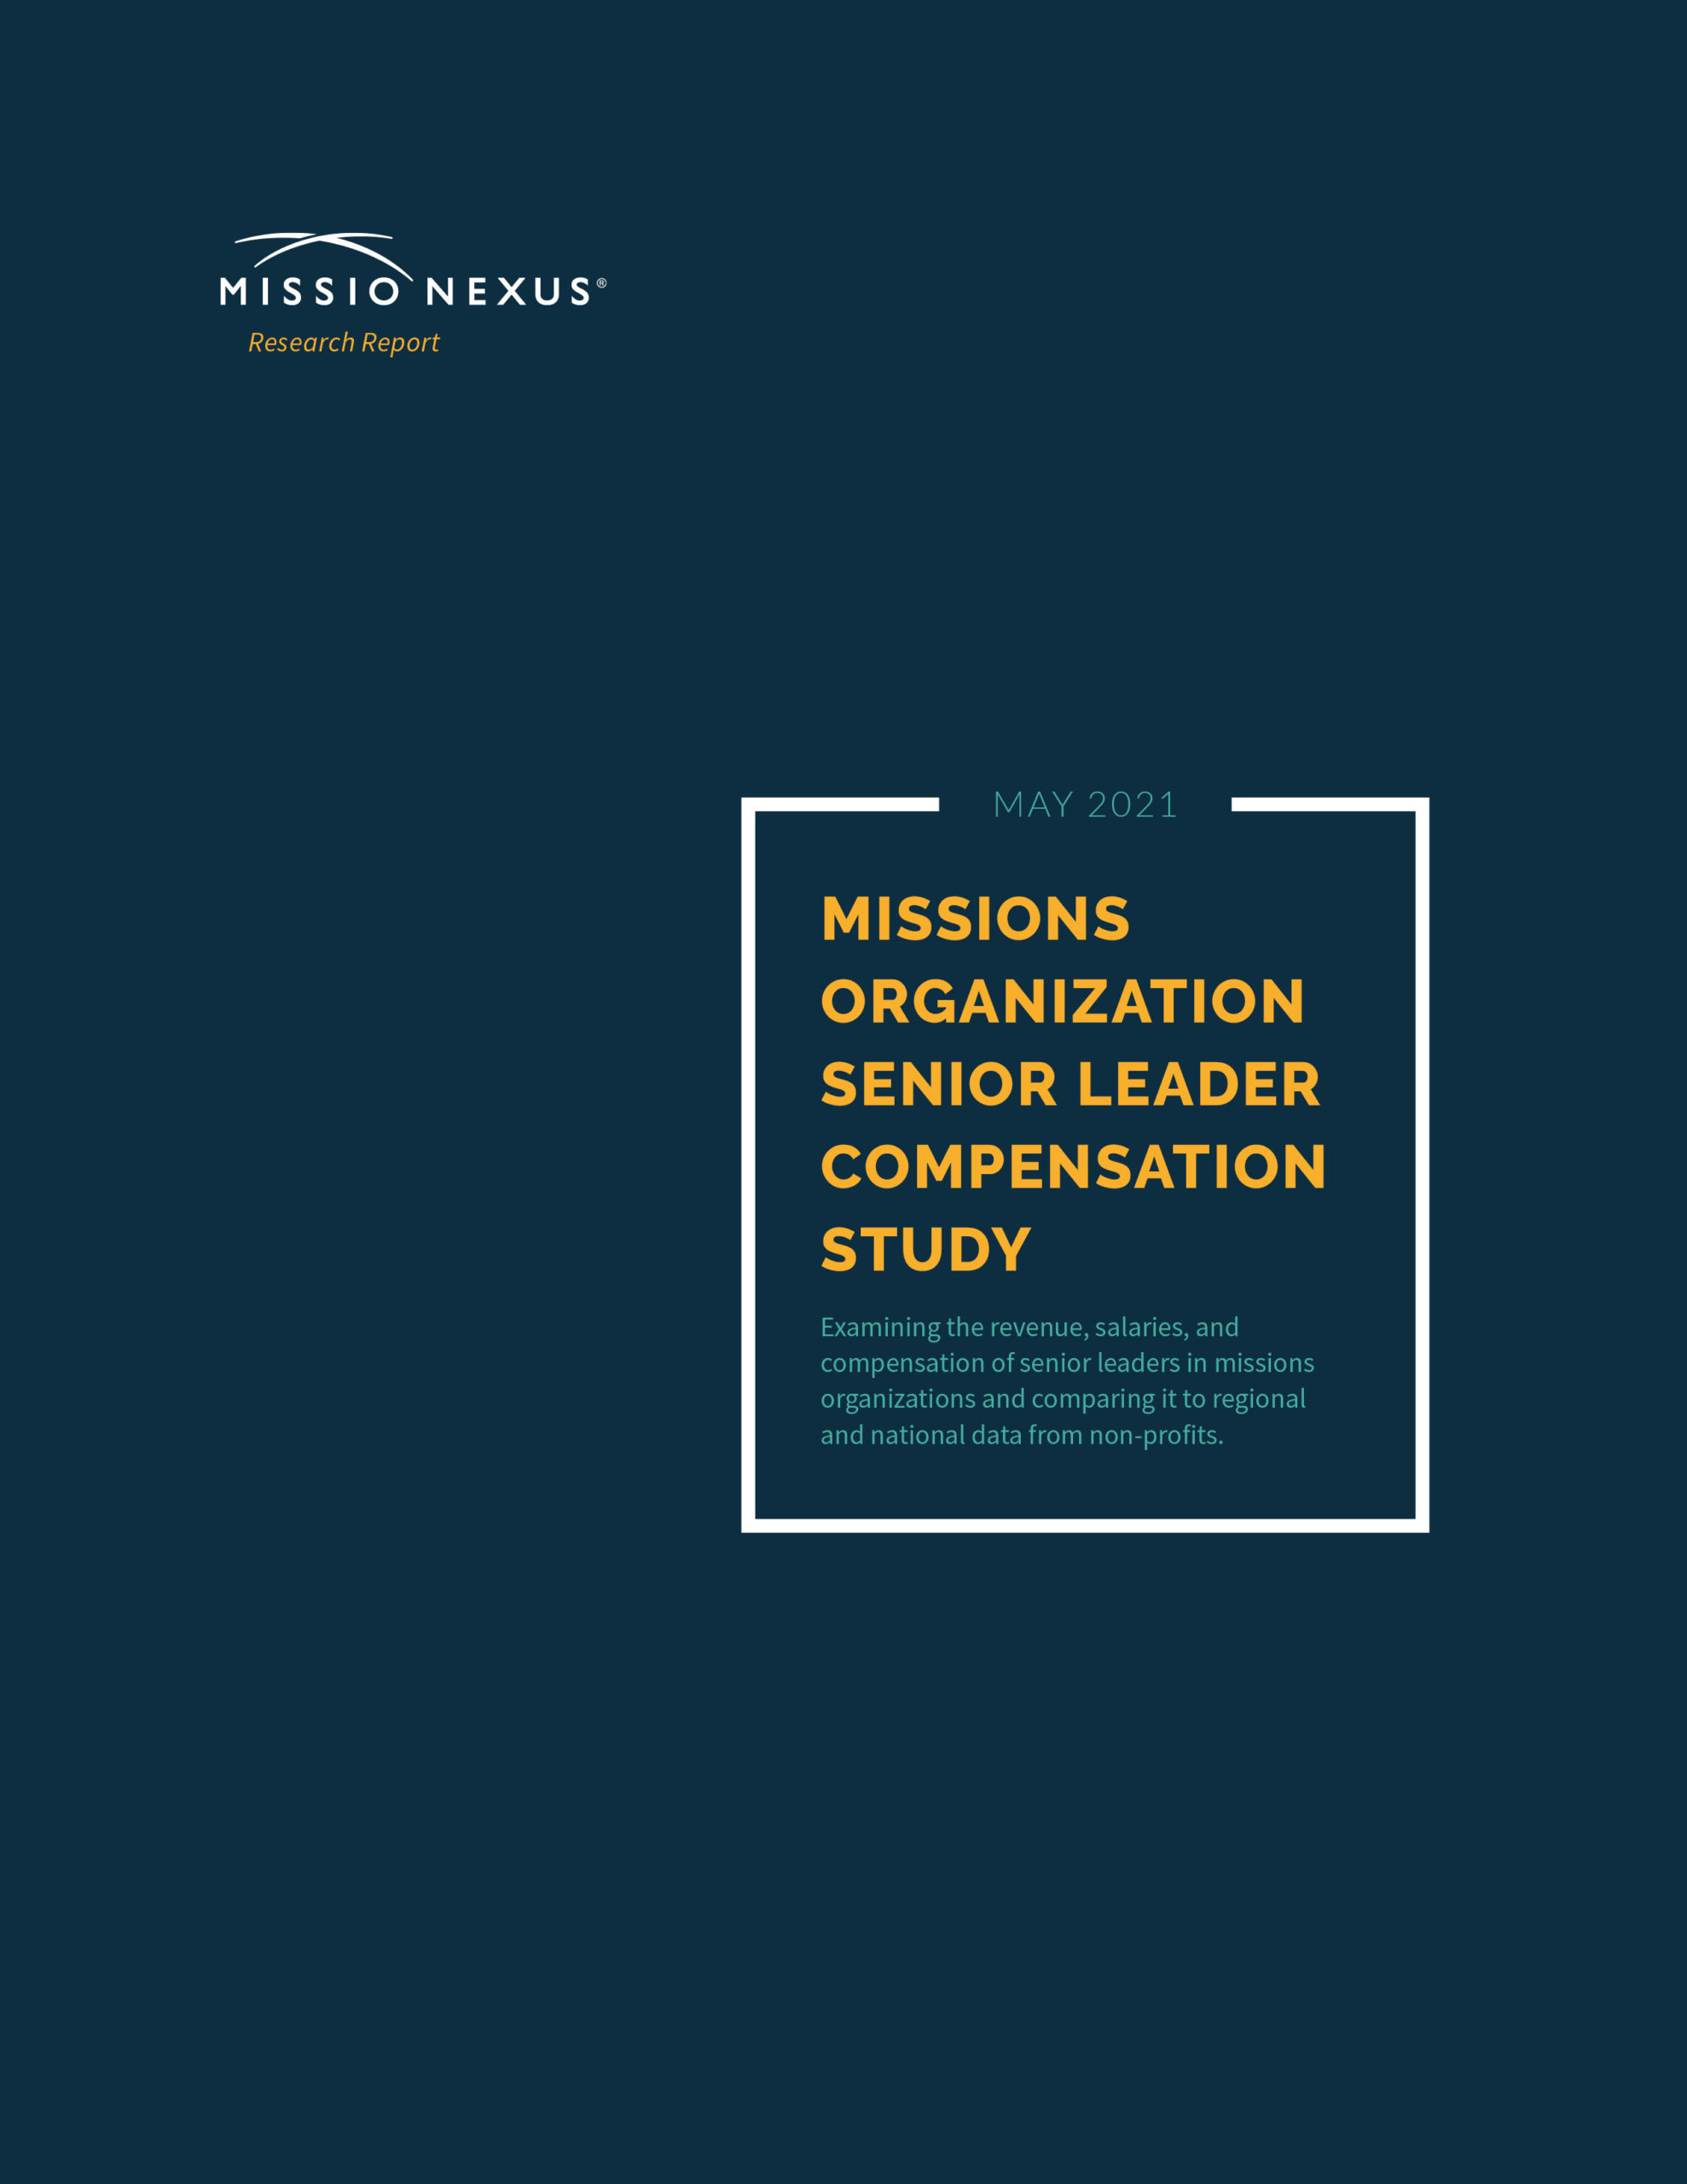 2021 Missions Organization Senior Leader Compensation Study - Research Report